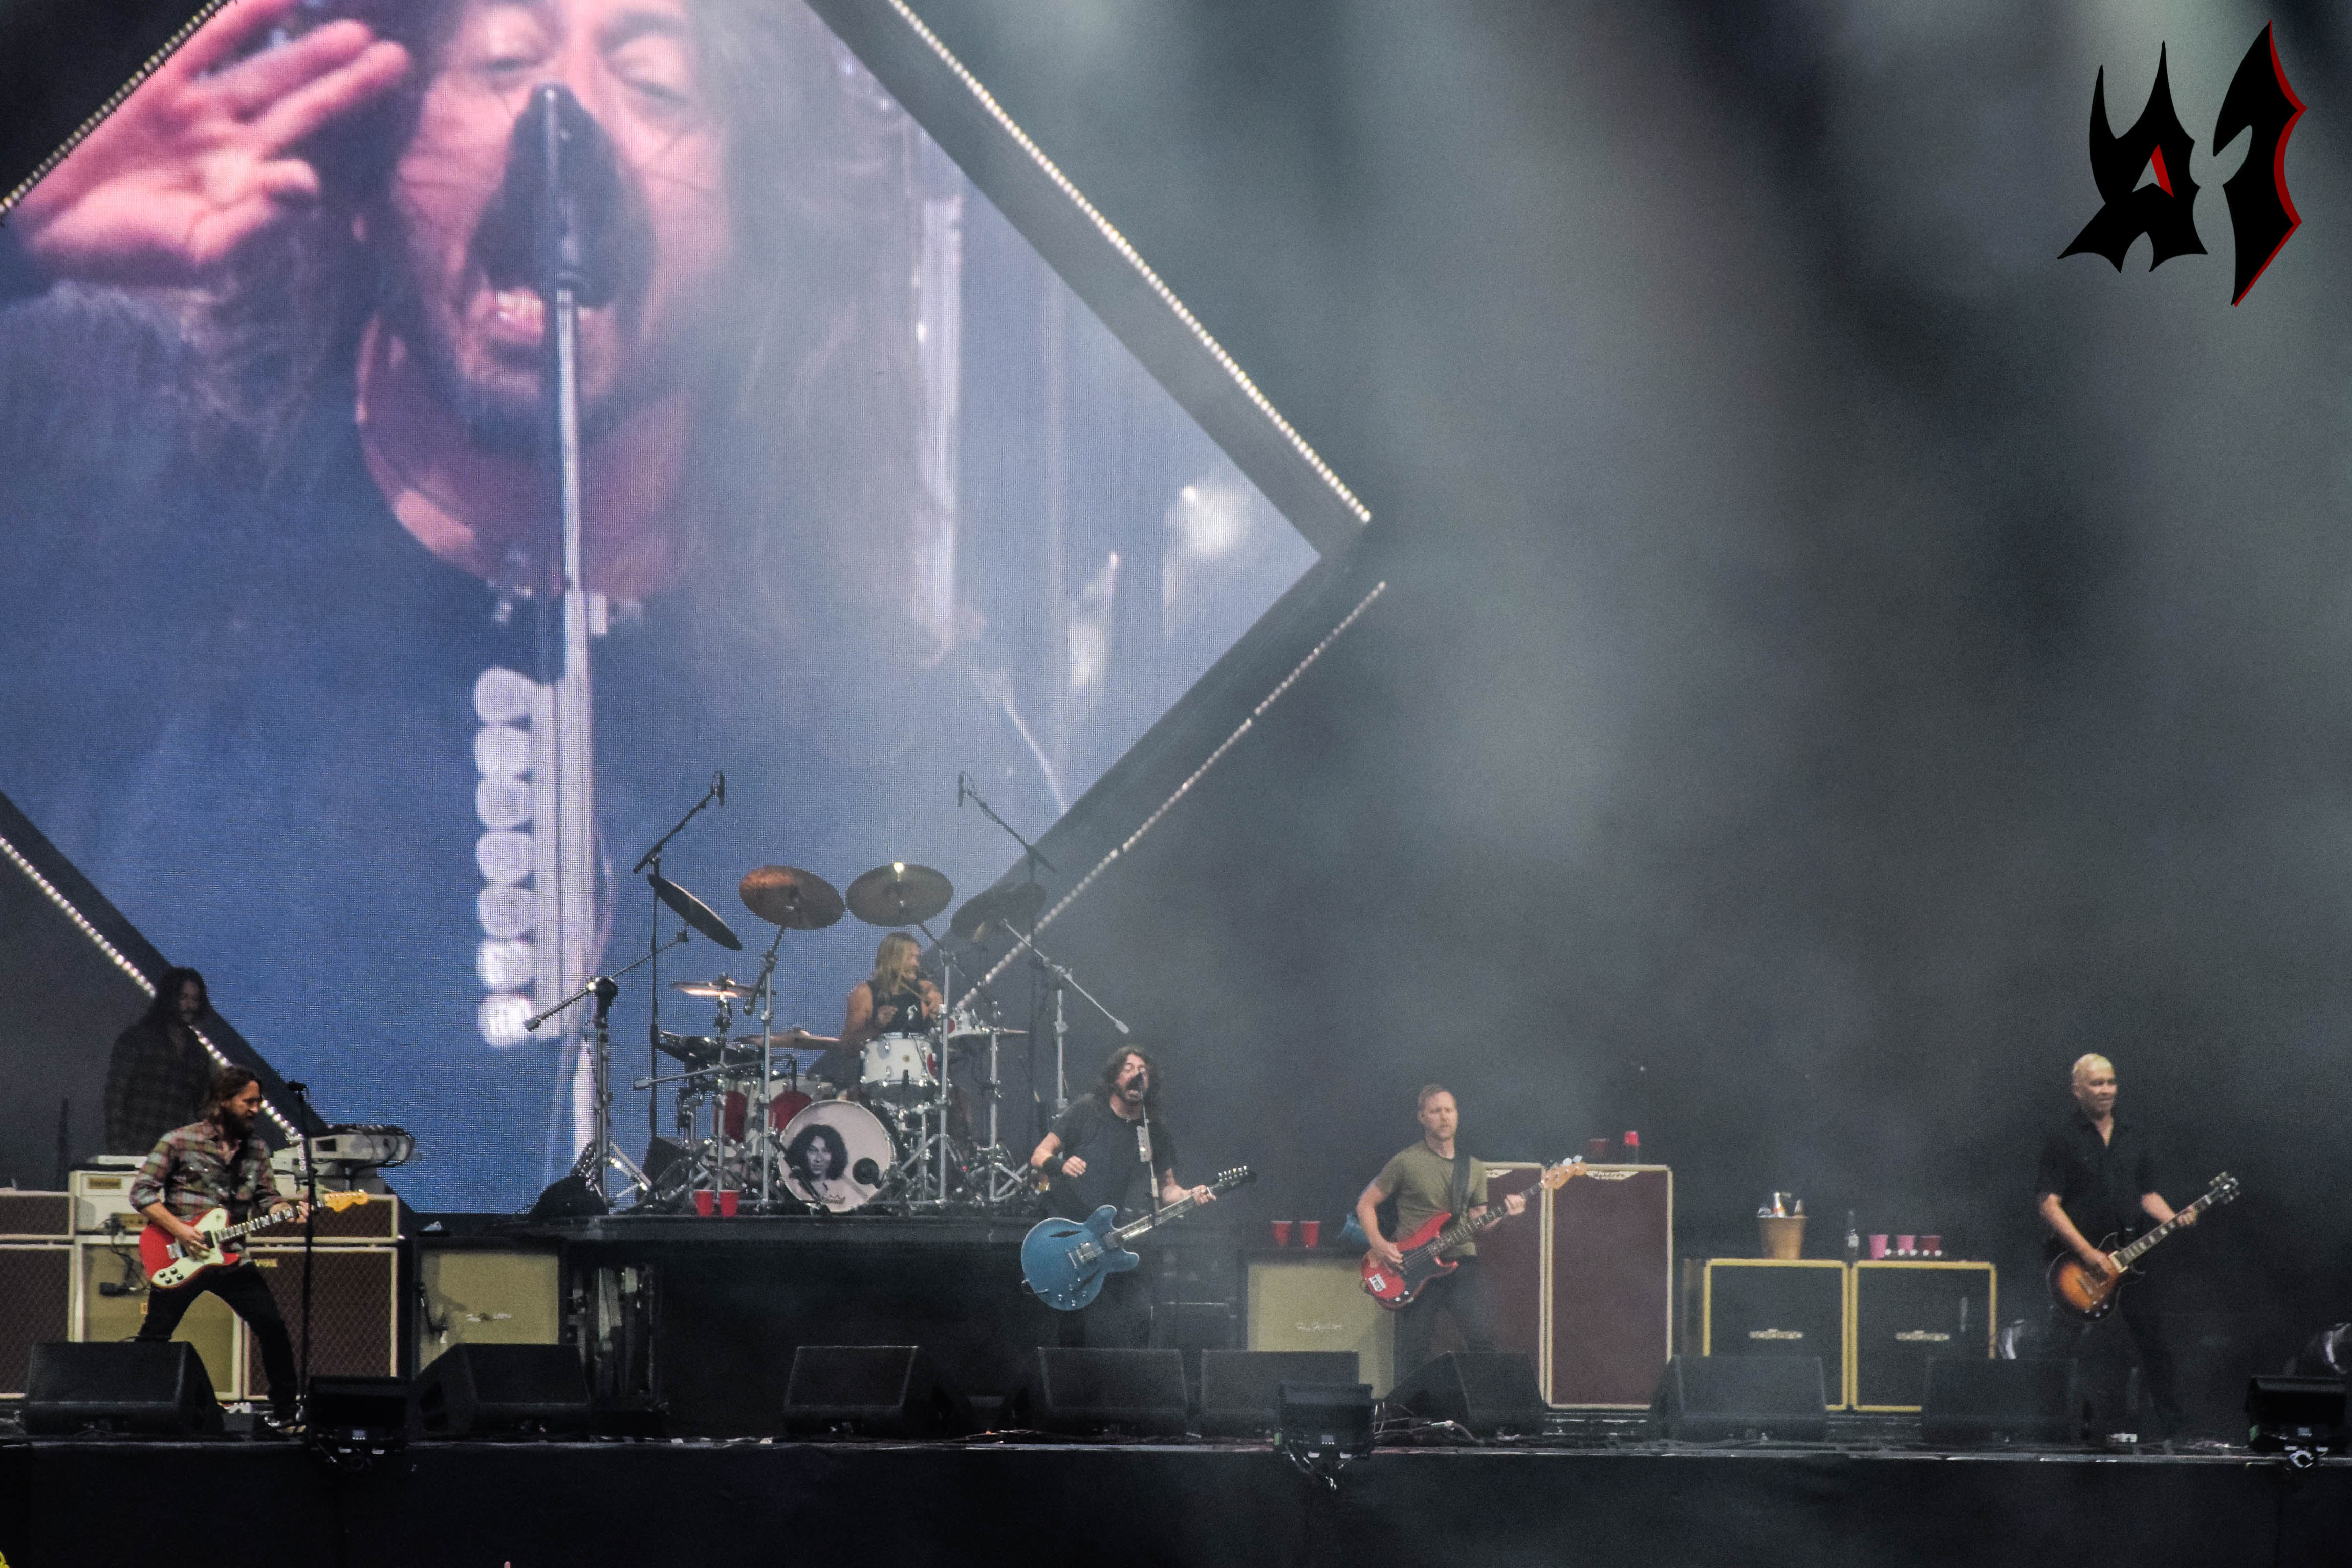 Donwload 2018 – Day 3 - Foo Fighters 2